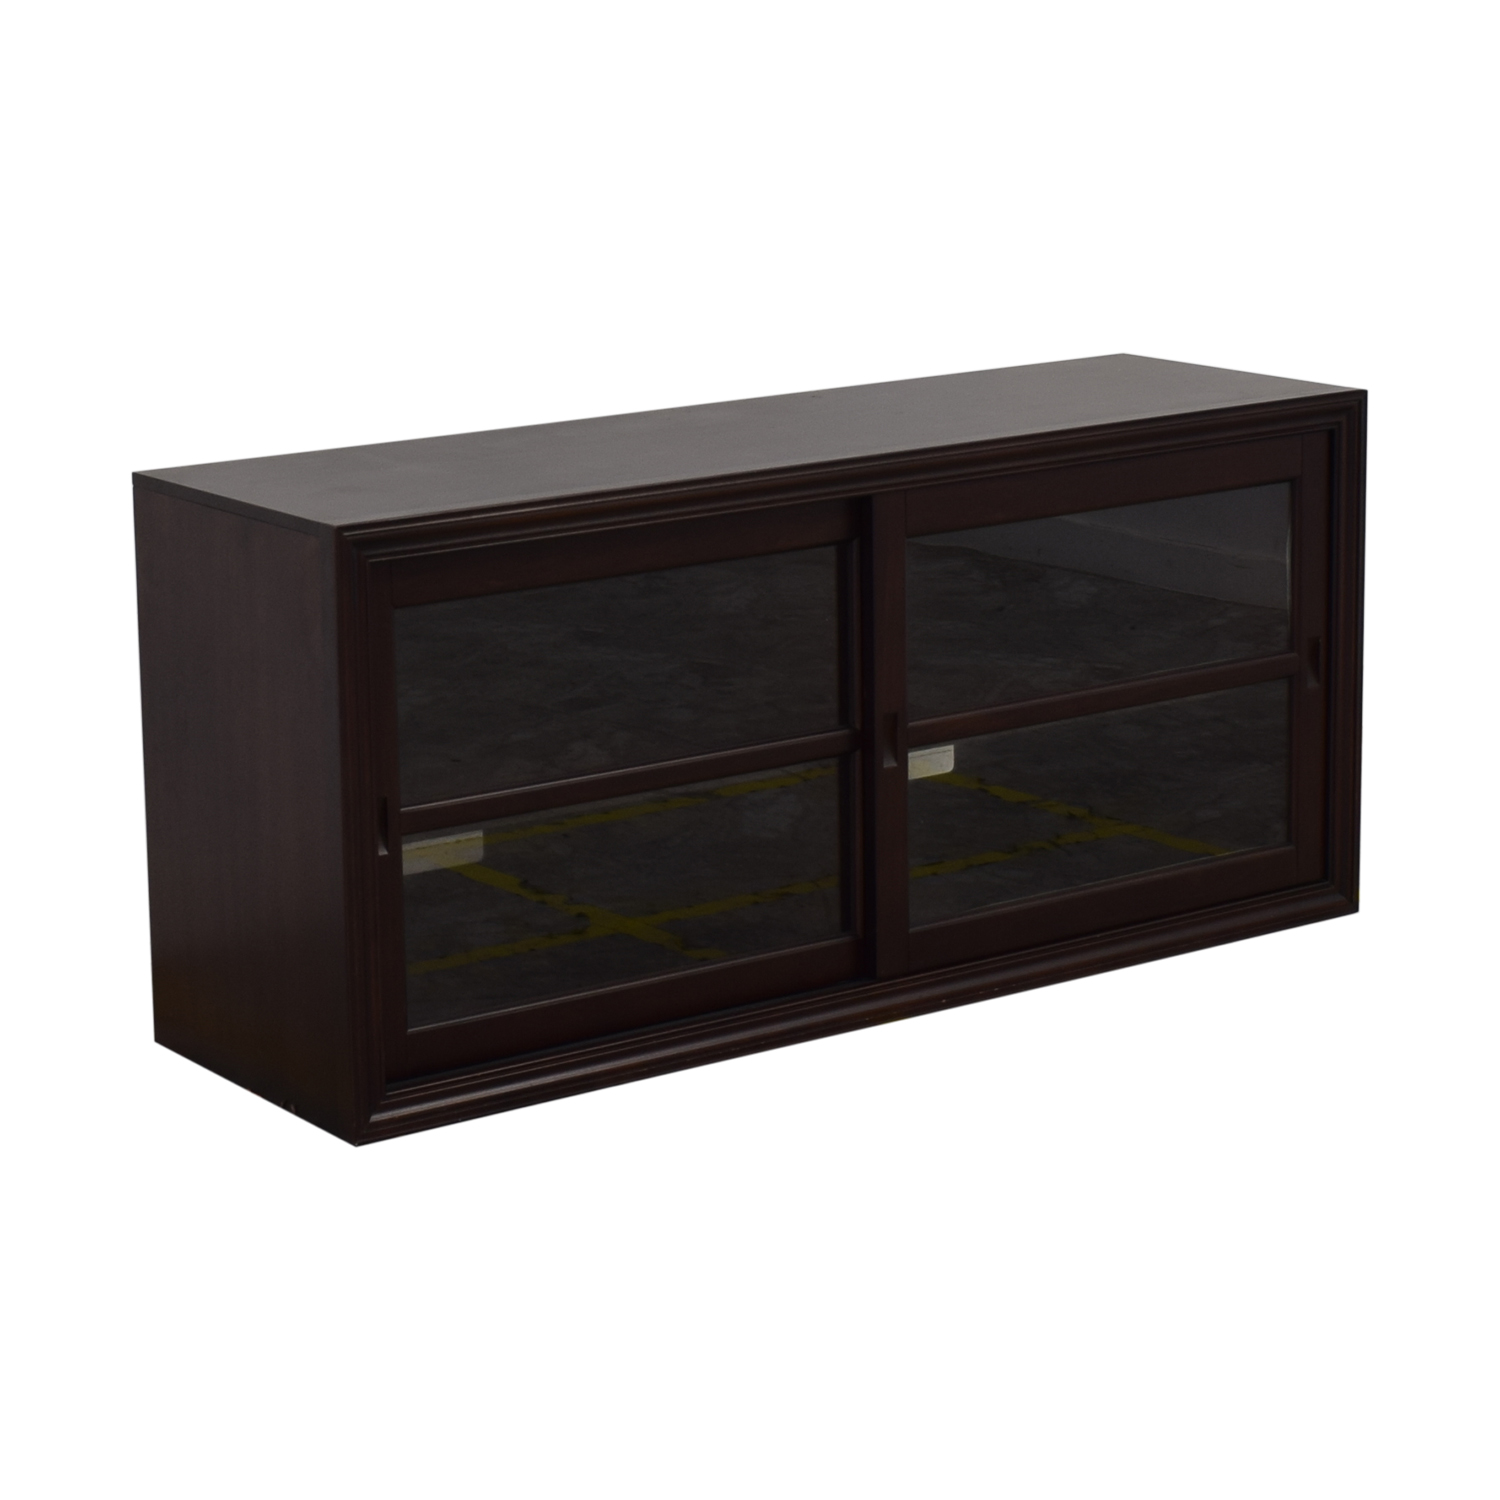 Enjoyable 78 Off Pottery Barn Pottery Barn Winslow Glass Door Media Stand Storage Home Interior And Landscaping Ferensignezvosmurscom